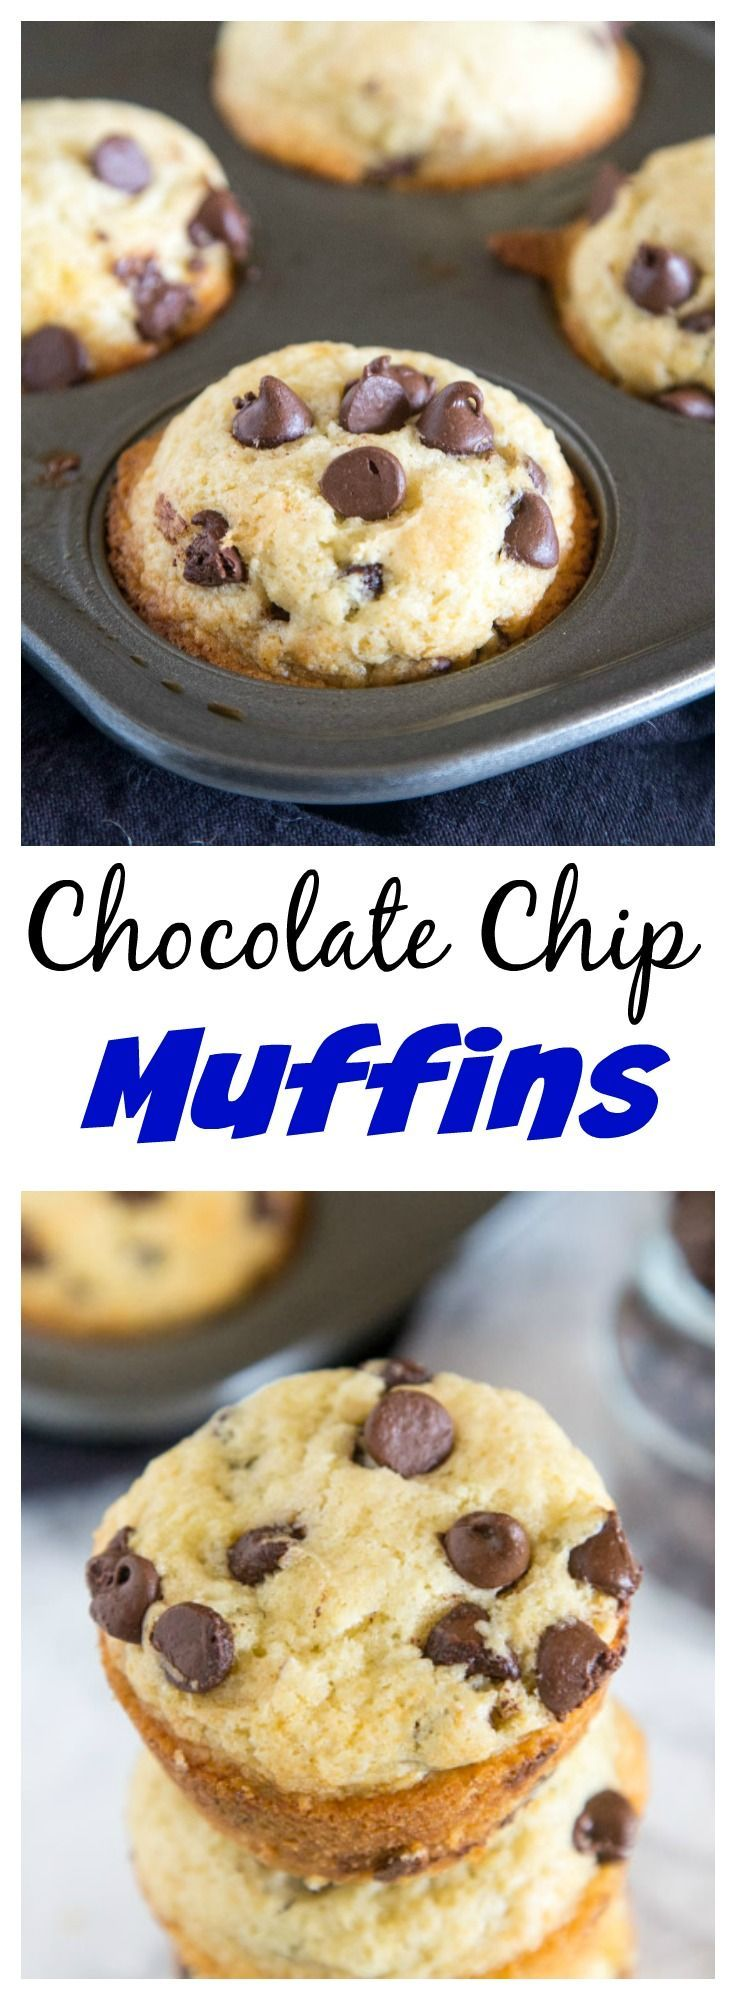 Chocolate Chip Muffins – Light and fluffy muffins with lots of chocolate chips. Great to make and stash in the freezer for quick mornings.